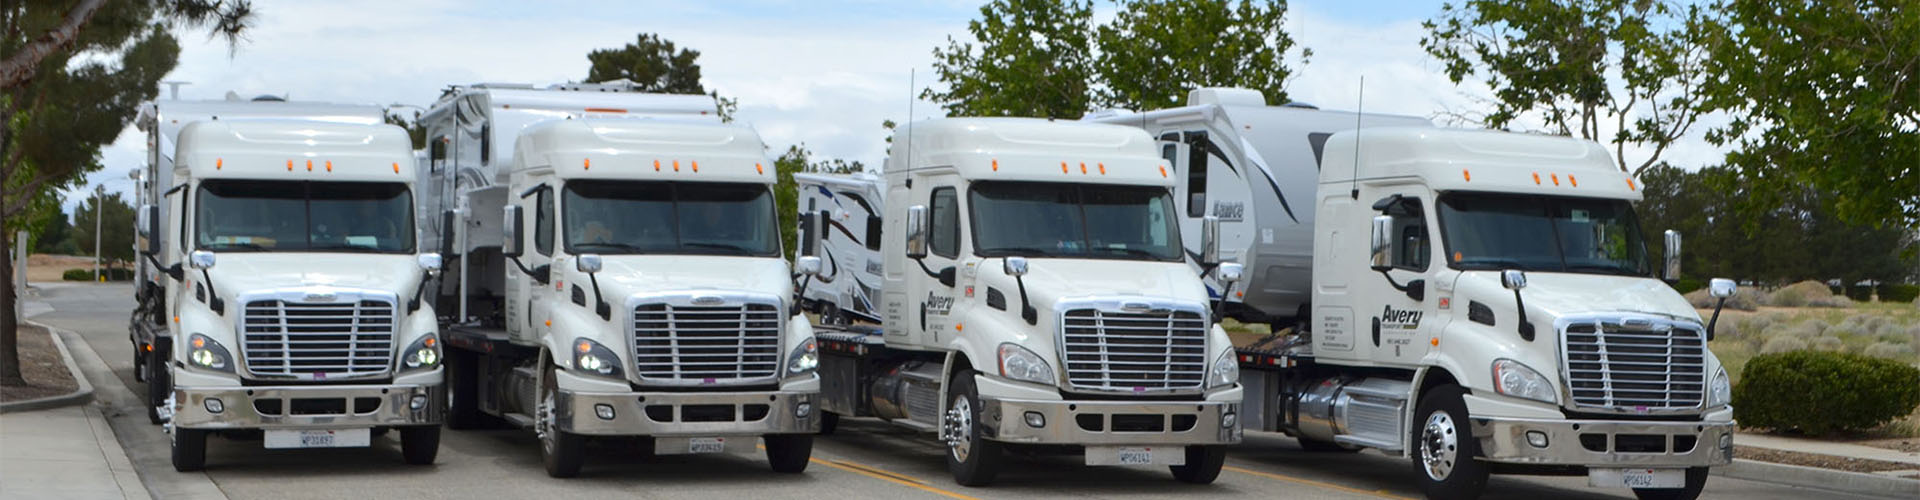 Avery Transport Inc. � Our Fleet